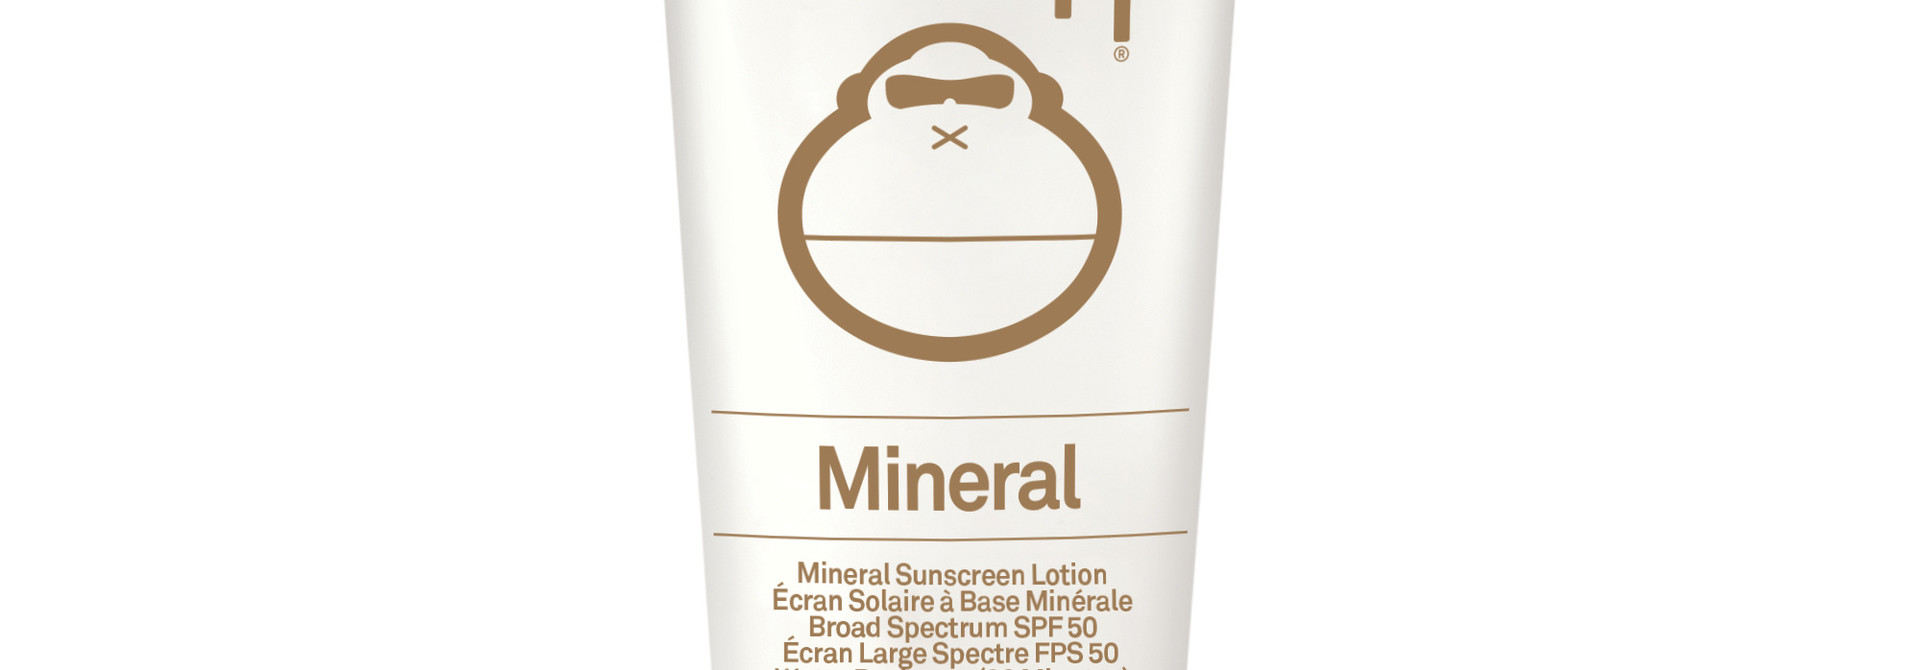 Mineral Sunscreen Lotion SPF 50 89 ml